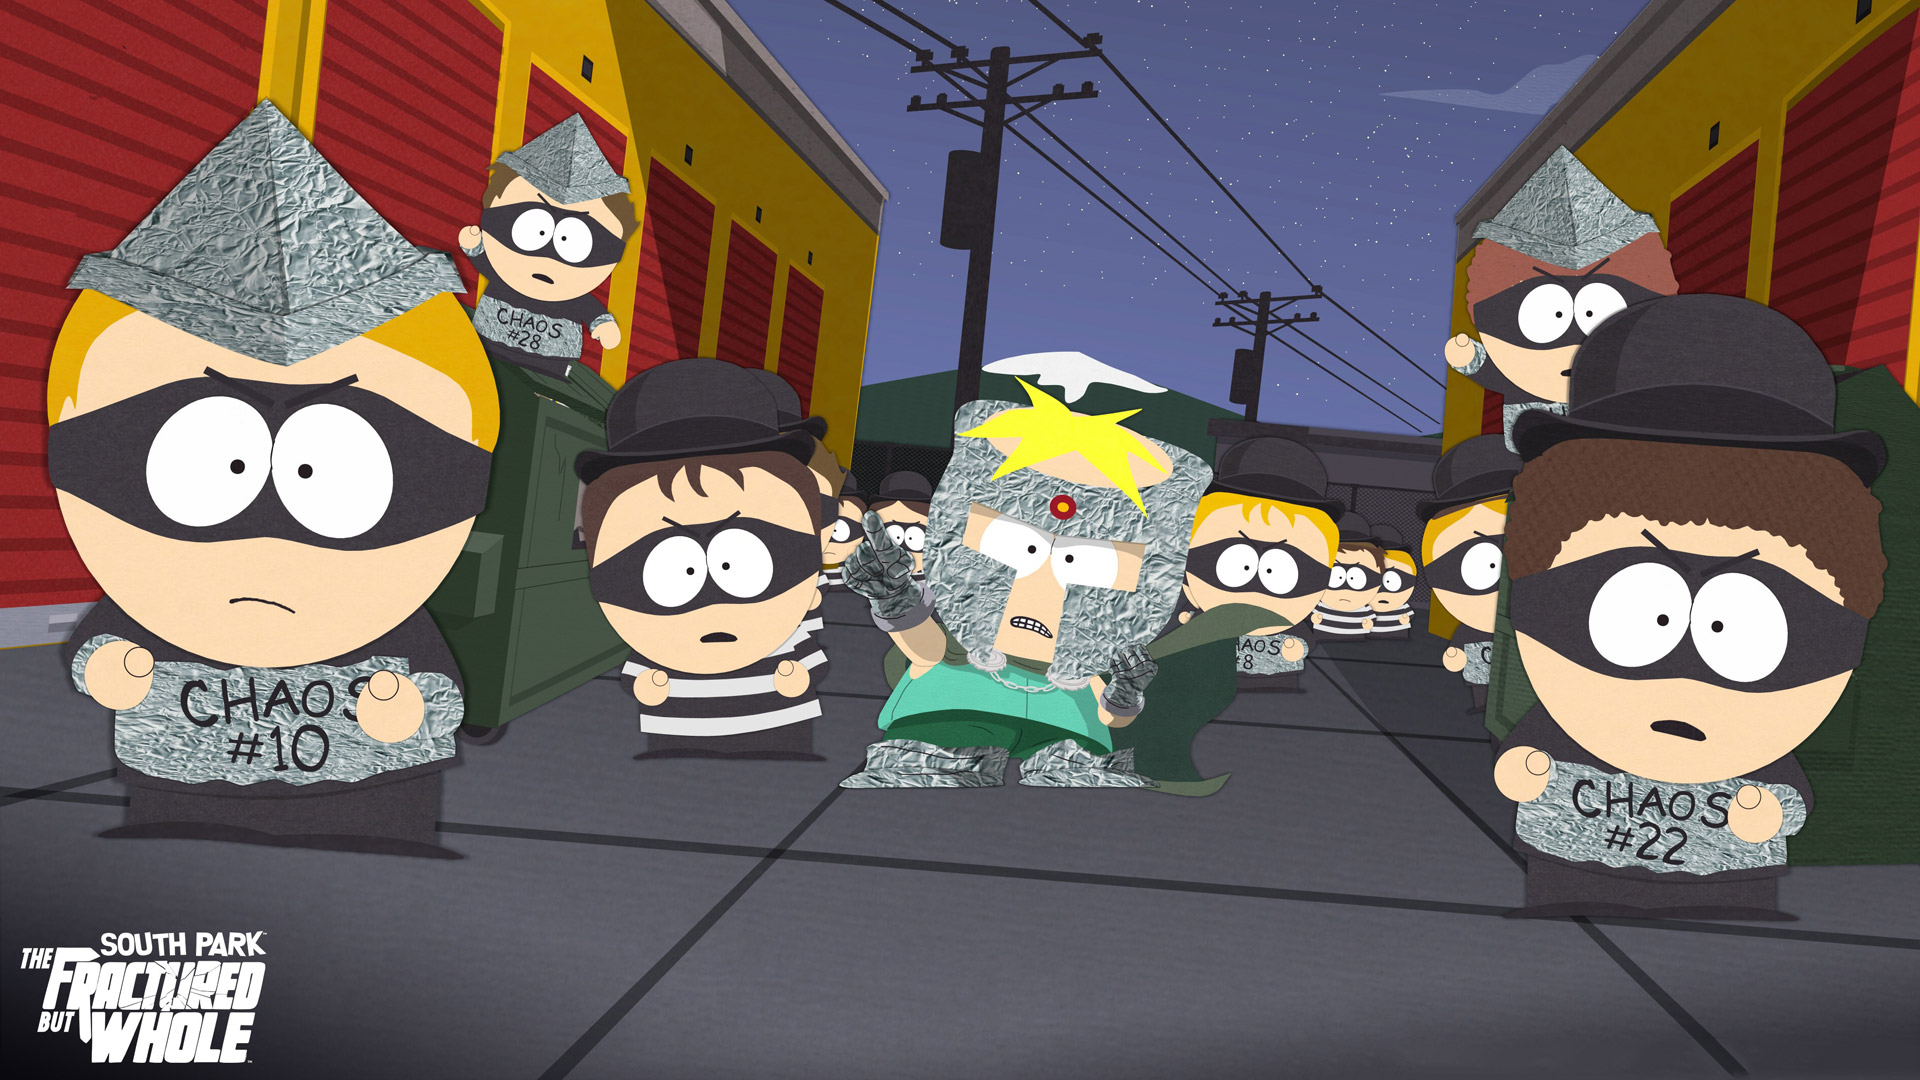 Free South Park: The Fractured but Whole Wallpaper in 1920x1080